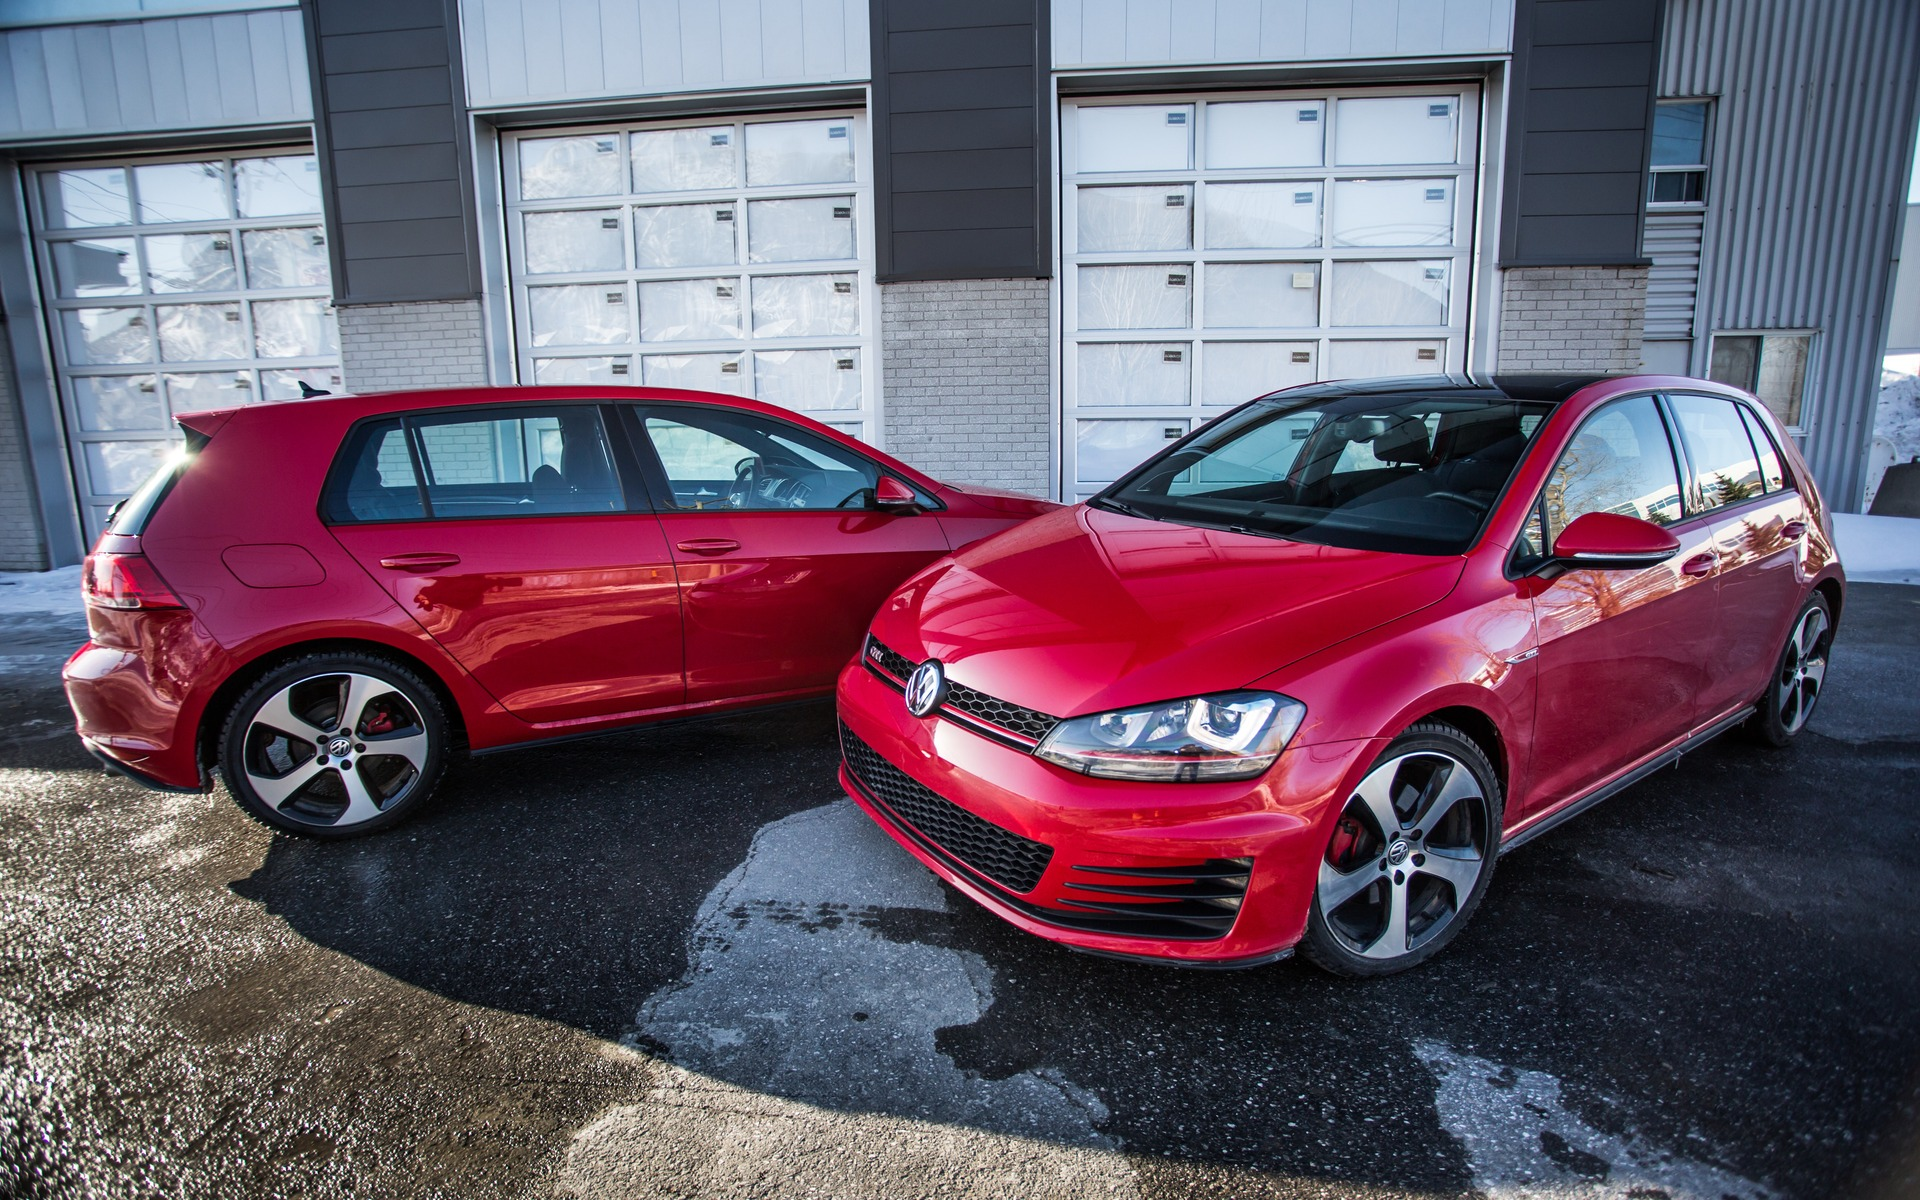 These two Volkswagen GTIs are identical, save for one small detail.